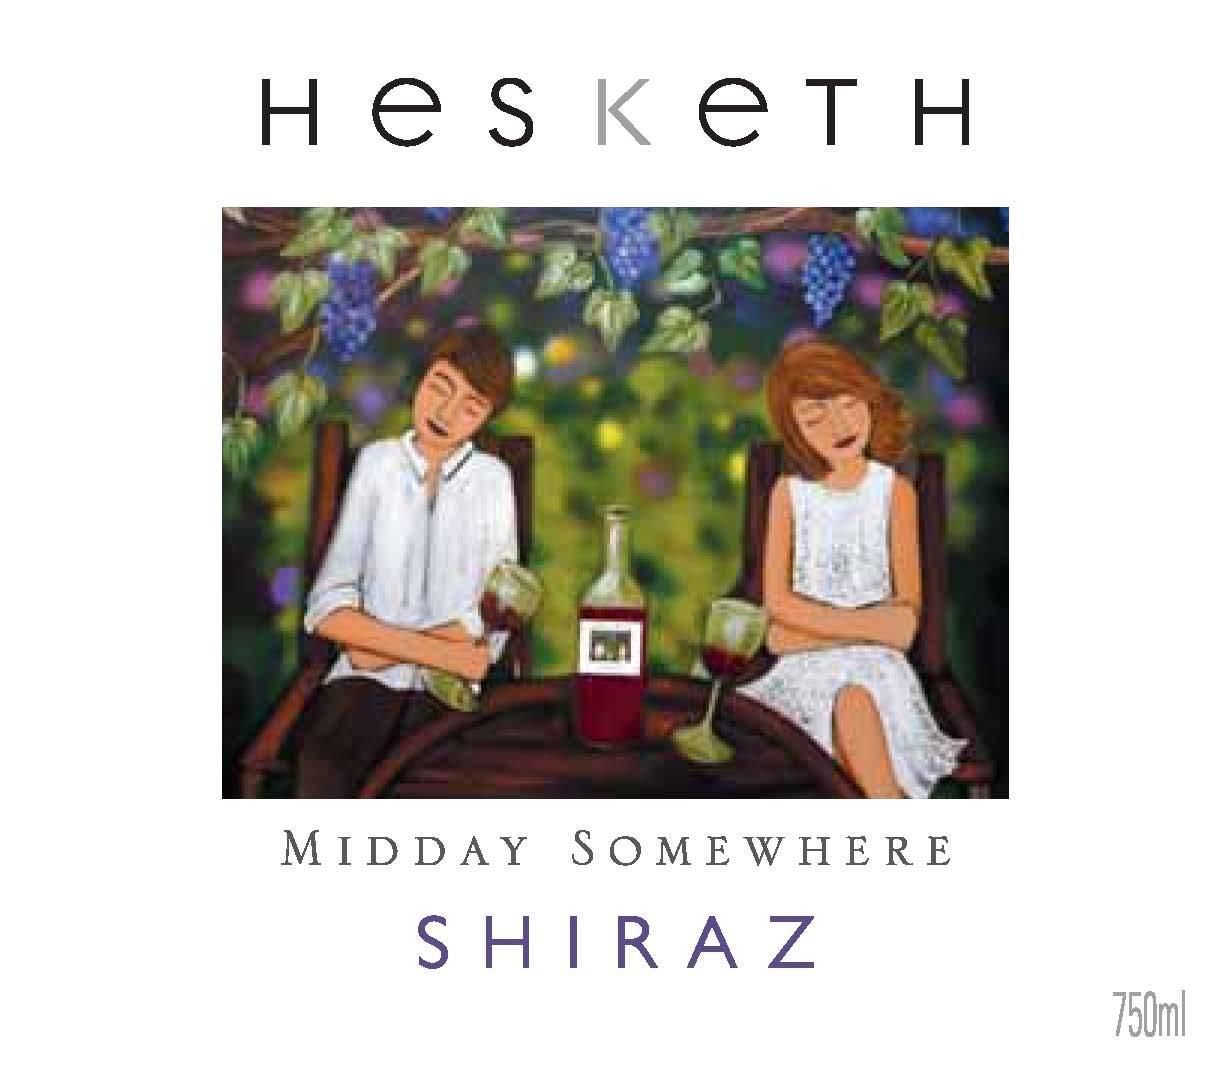 Hesketh Midday Somewhere Shiraz 2013 Front Label